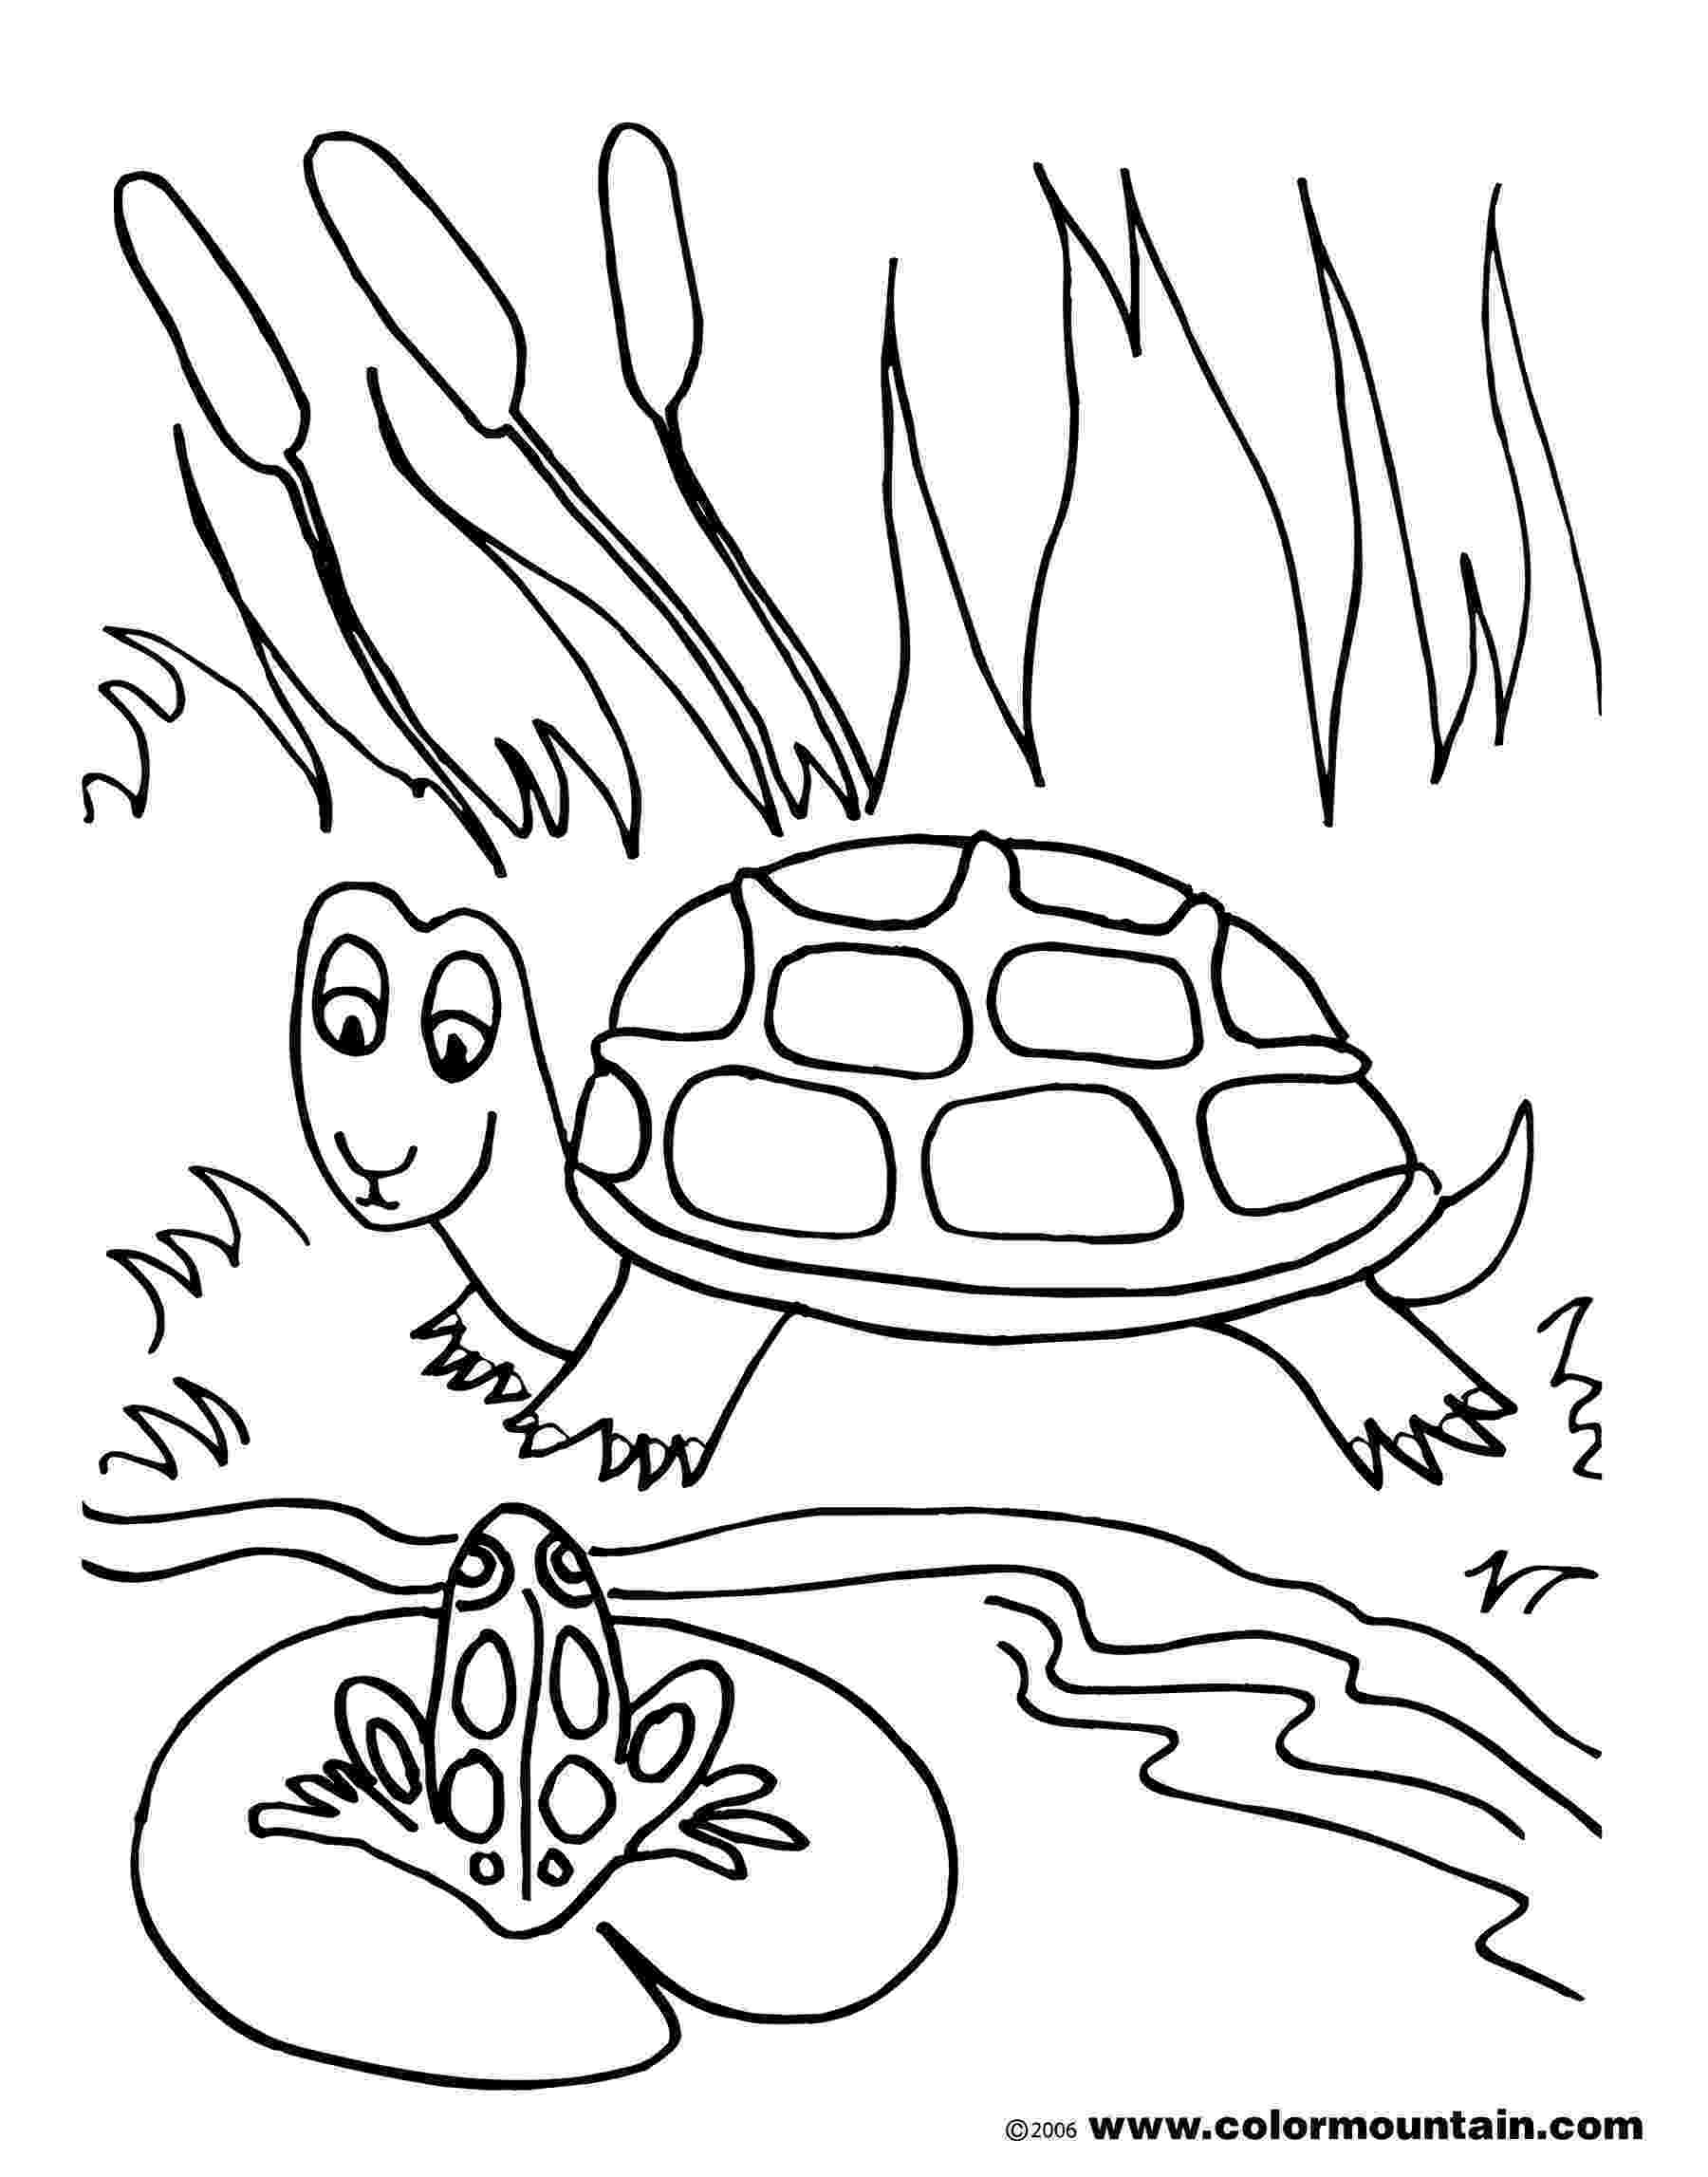 pond coloring page fish pond drawing at getdrawingscom free for personal coloring pond page